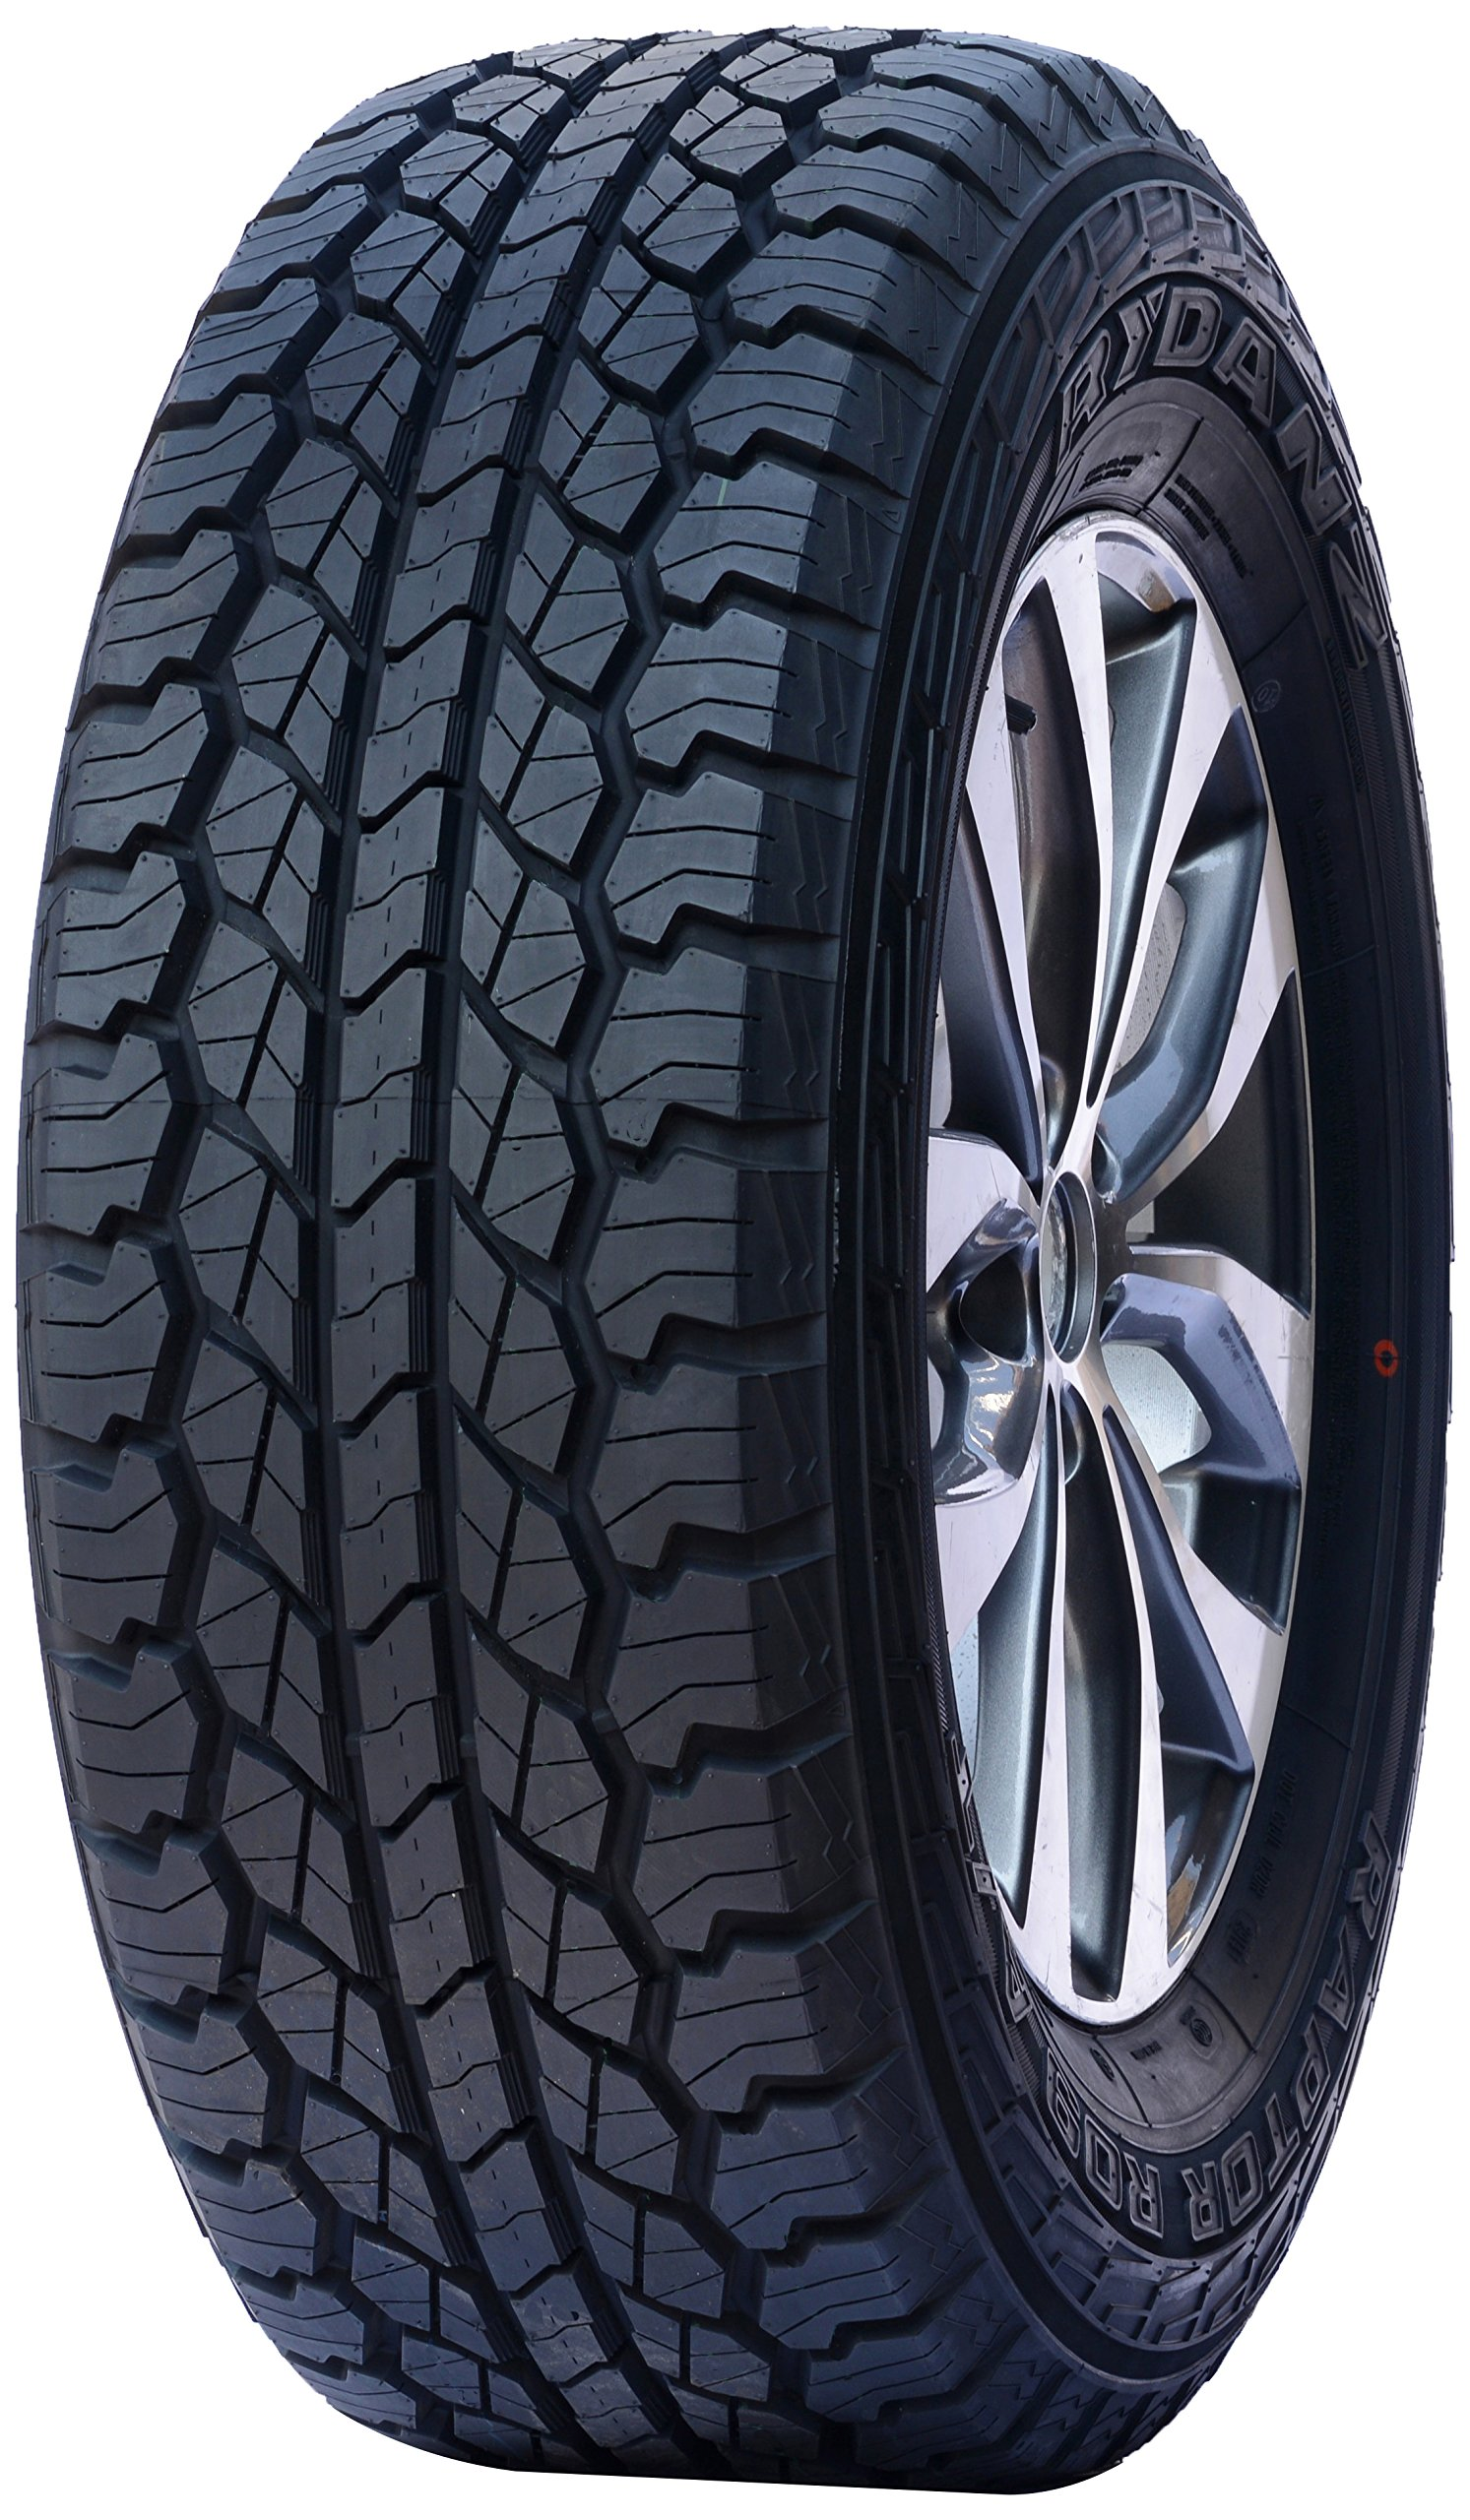 Rydanz RAPTOR R09 AT All-Terrain Radial Tire - 265/70R16 112S